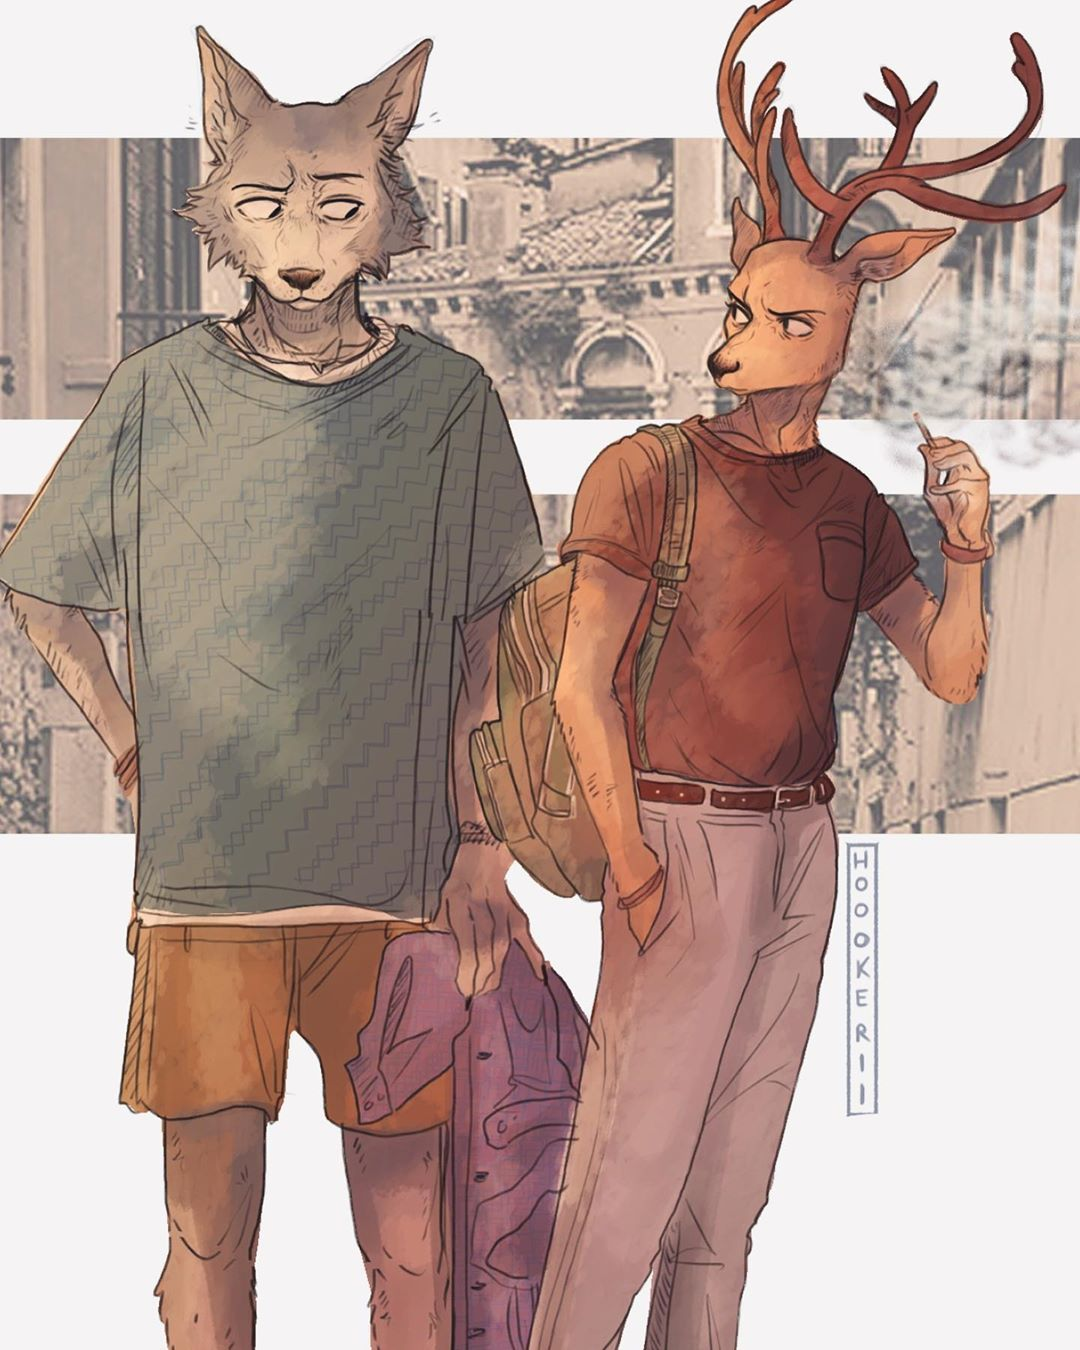 """Hoookerii 🌿🌱 on Instagram: """"I'll post the full one in my story because it cropped out their feet 😭anyhow....the boys. 🐺🦌✨👌🏻 #art #artist #artwork #digitalart…"""""""